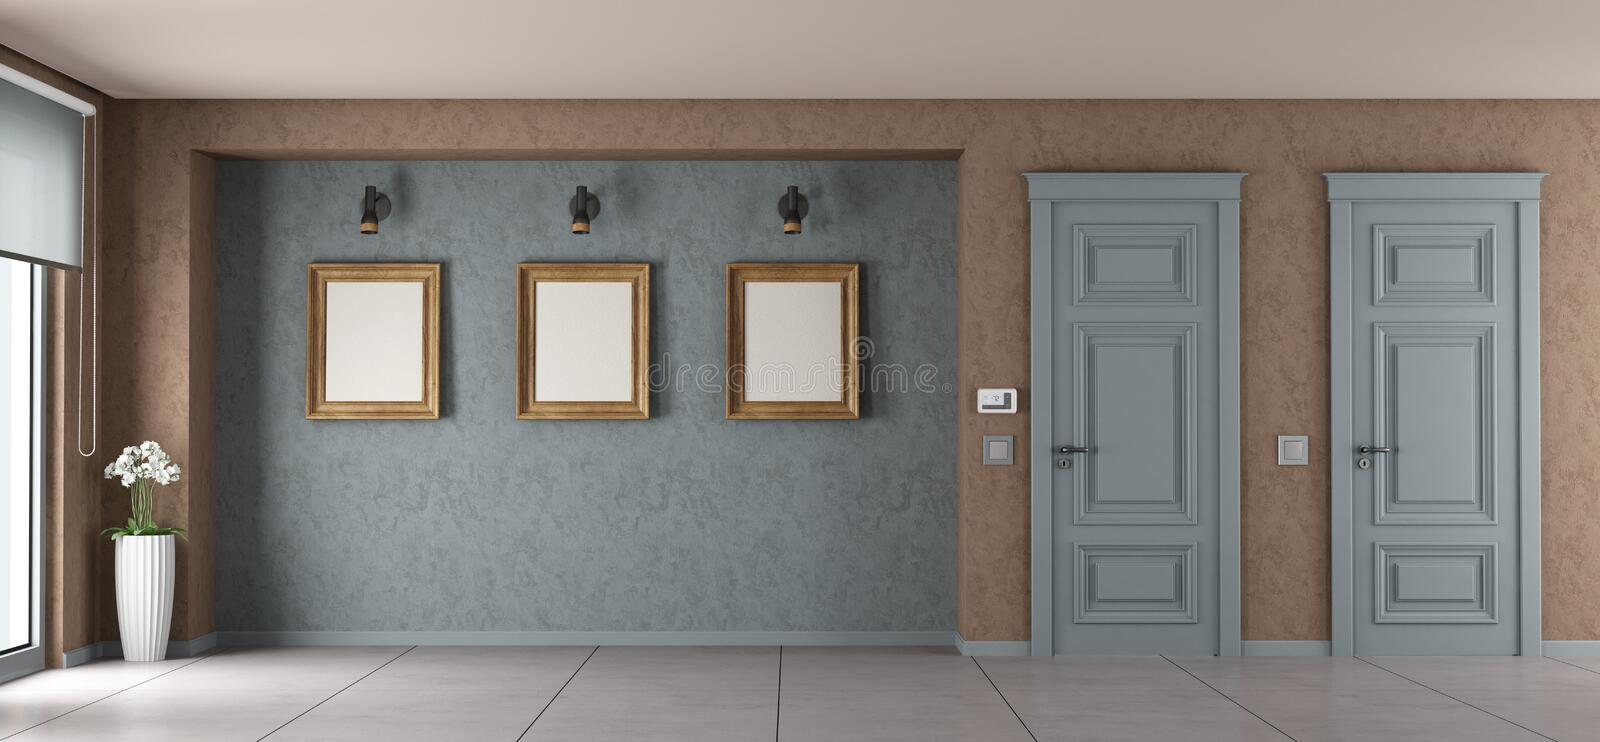 Empty living room royalty free illustration